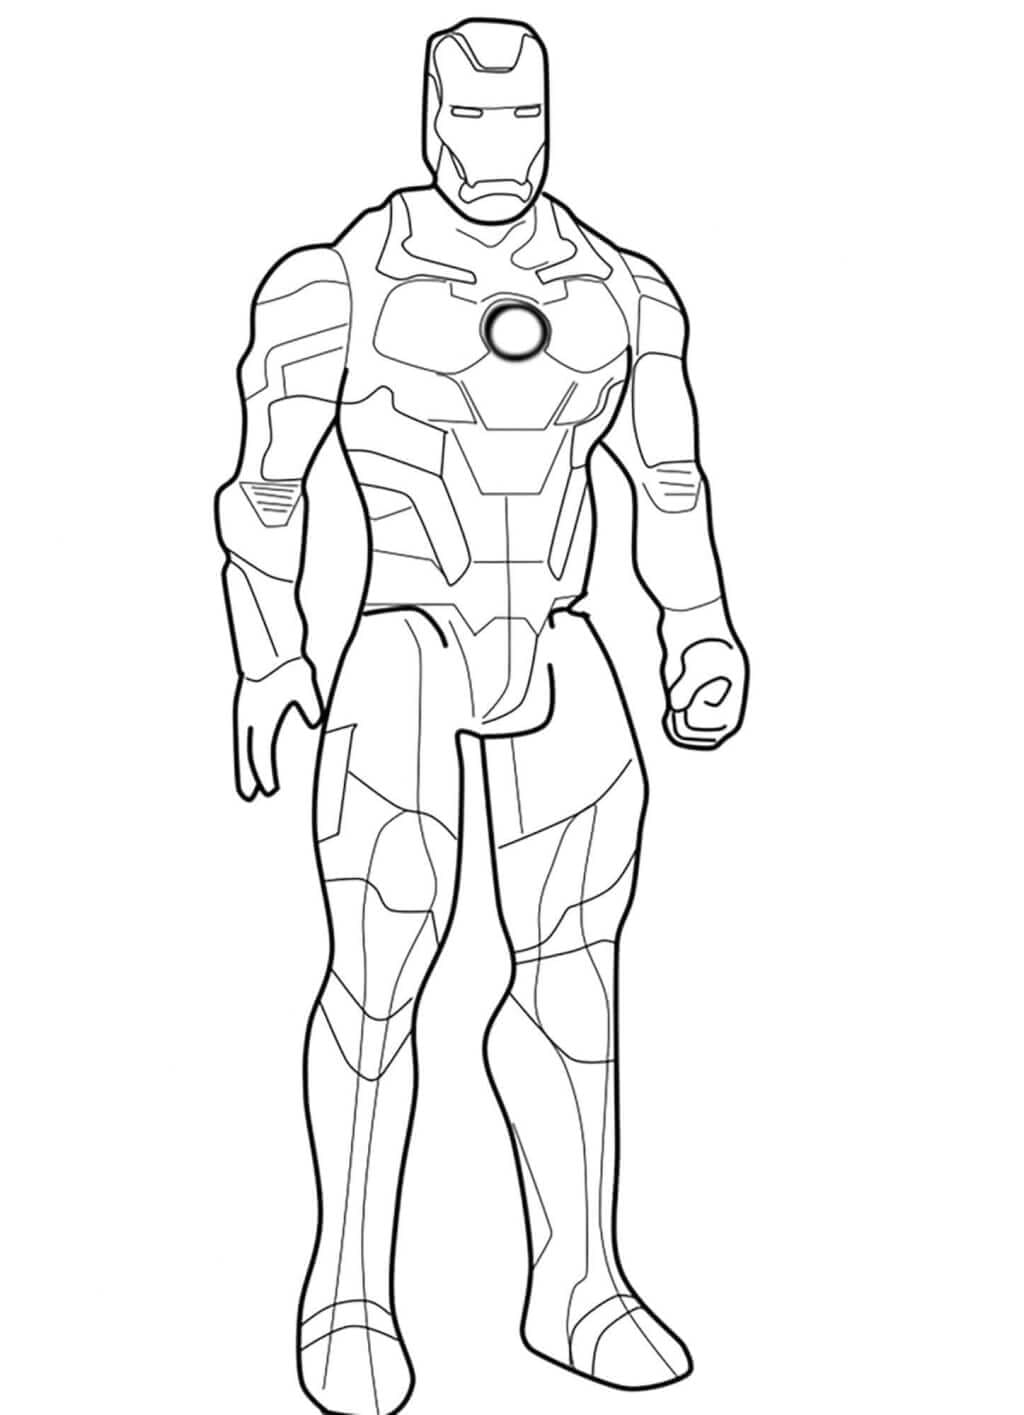 Iron Man Coloring Pages   18 images Free Printable